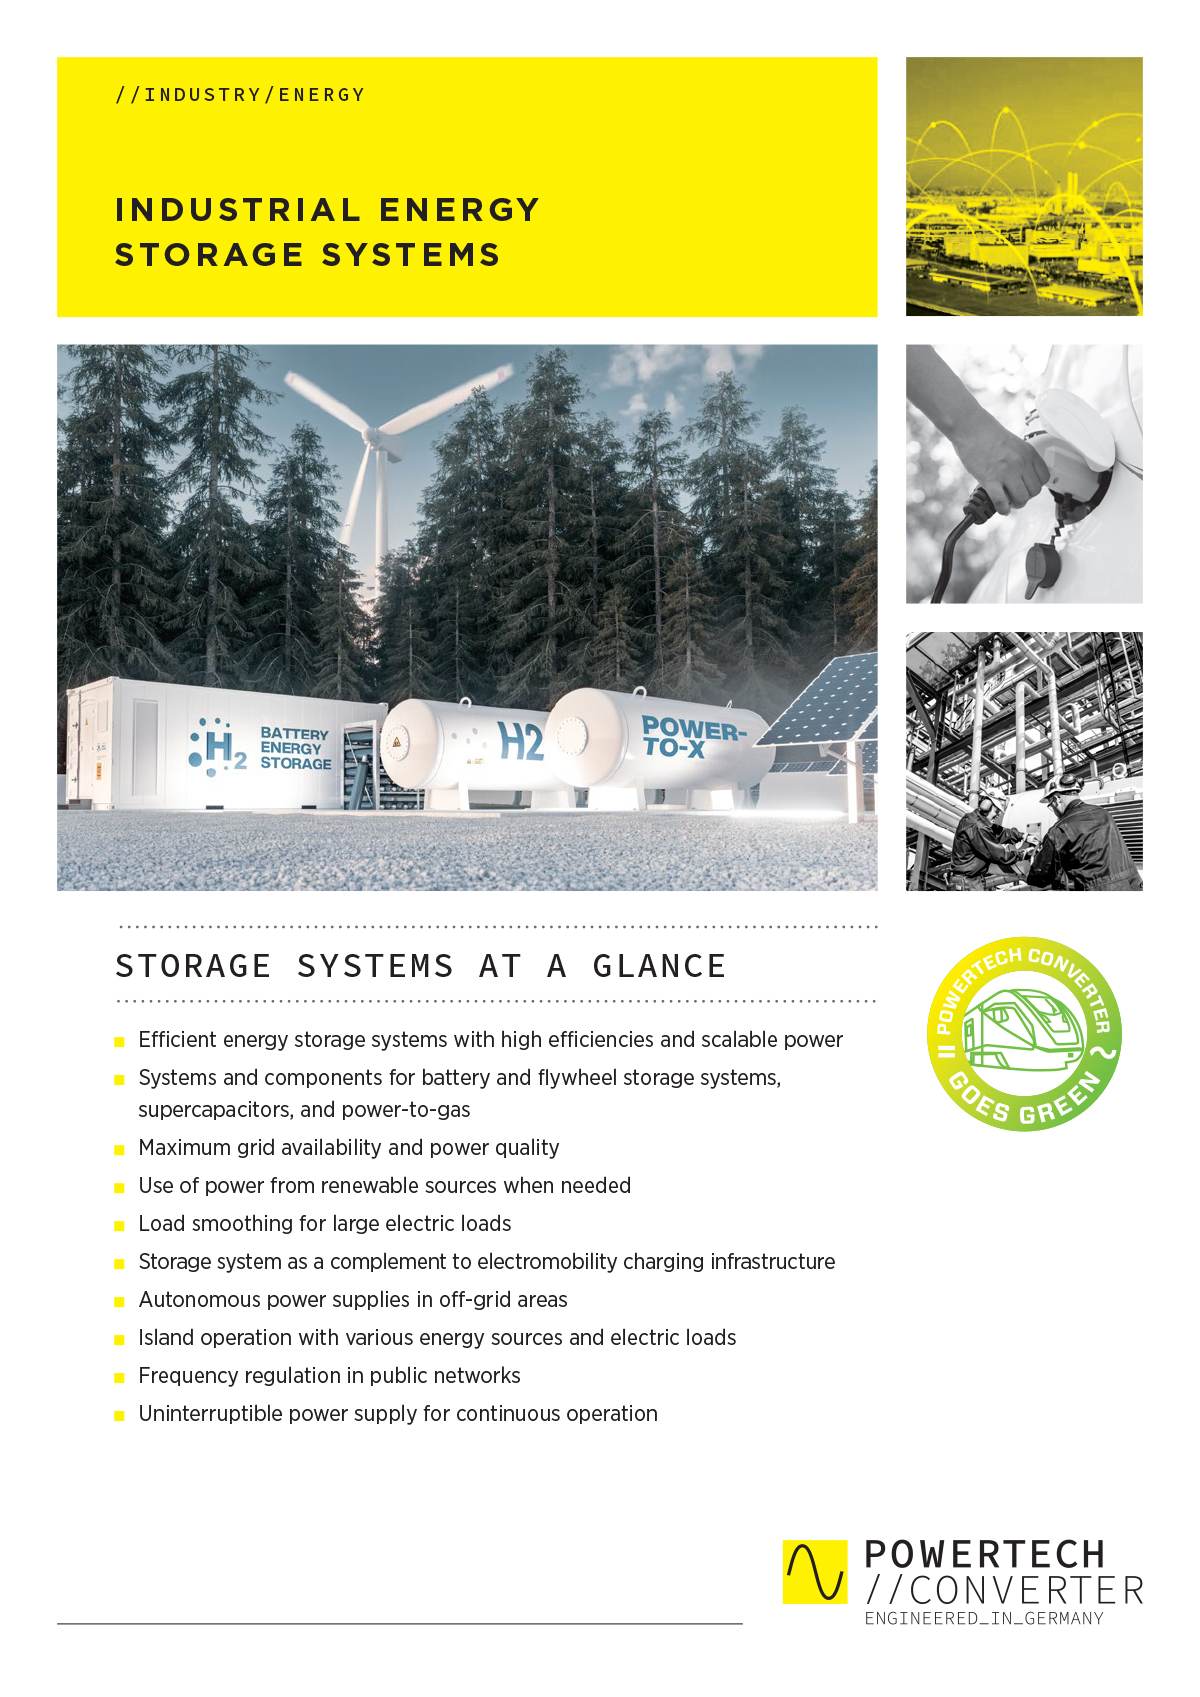 INDUSTRIAL ENERGY STORAGE SYSTEMS